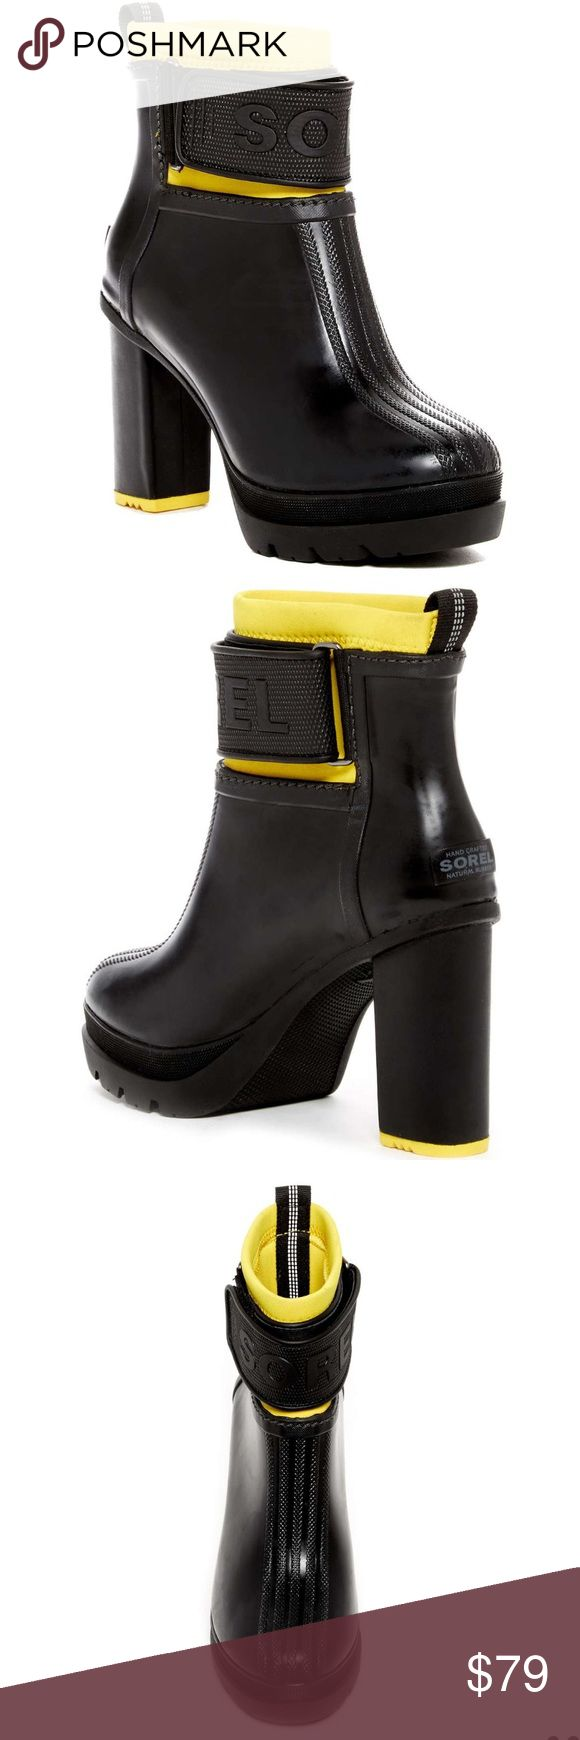 Sorel rain boot New in box. Totally chic waterproof rain boot. Sorel Shoes Winter & Rain Boots